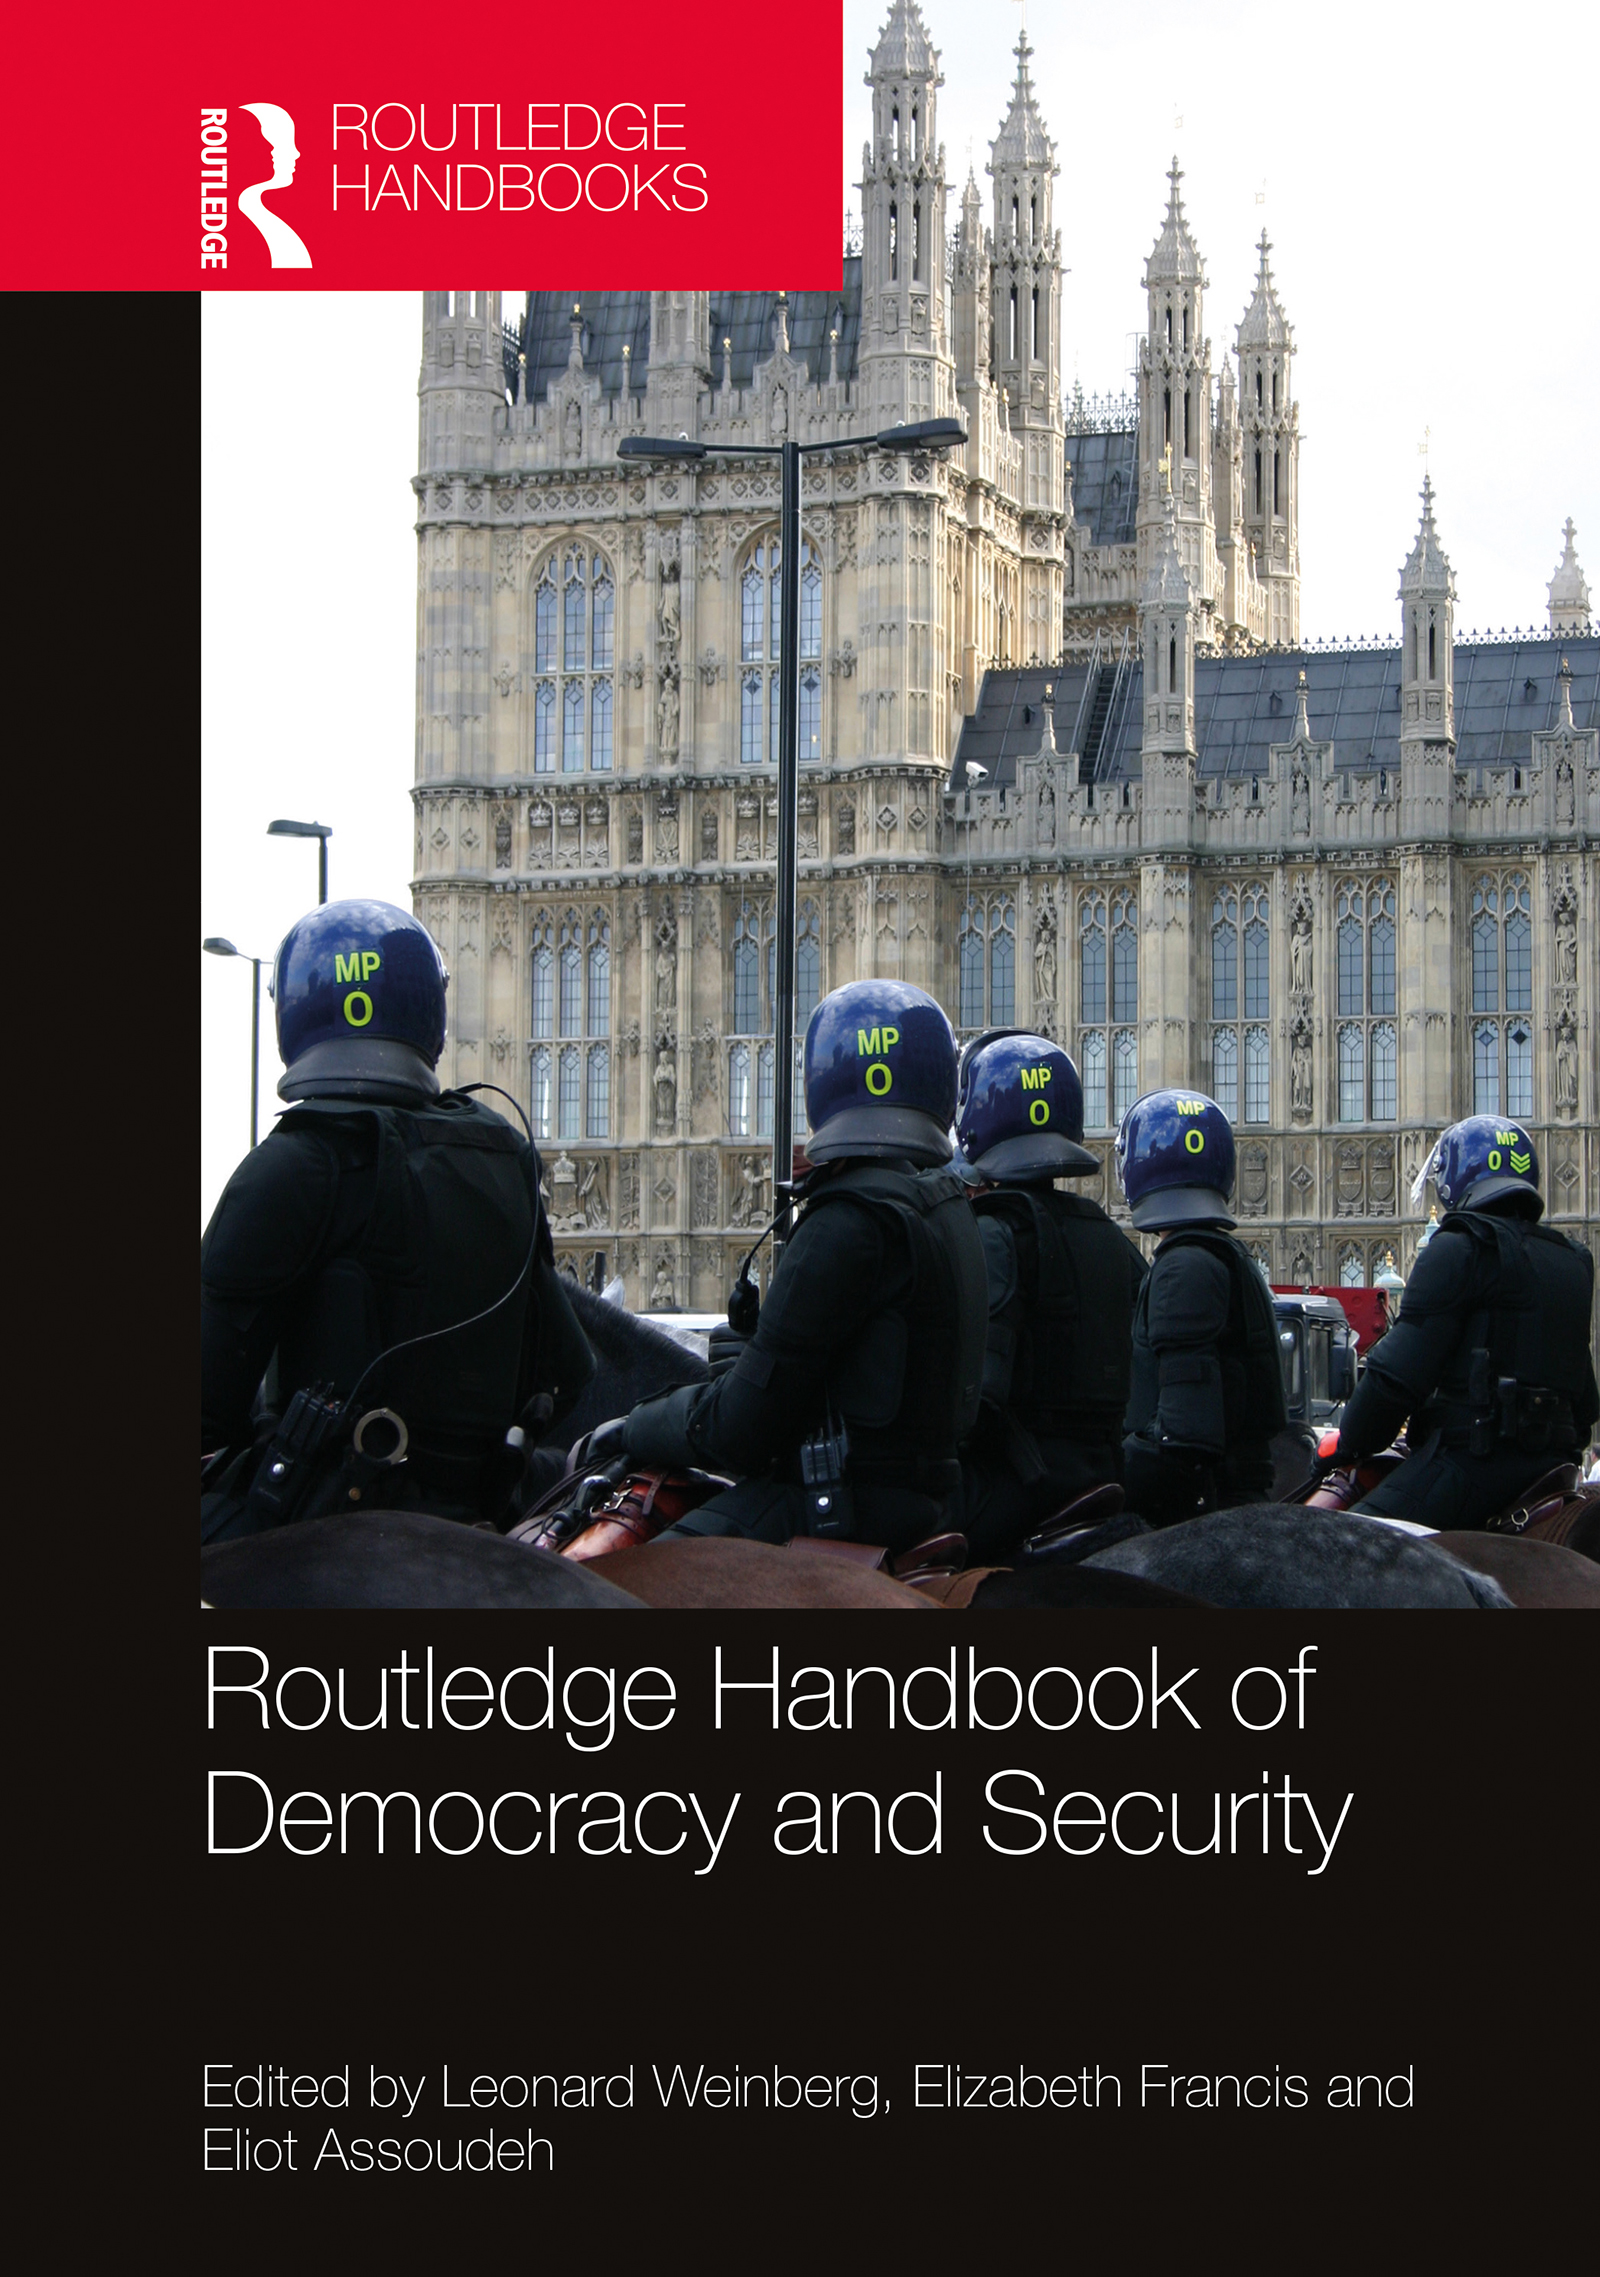 Democracy and security in South Africa